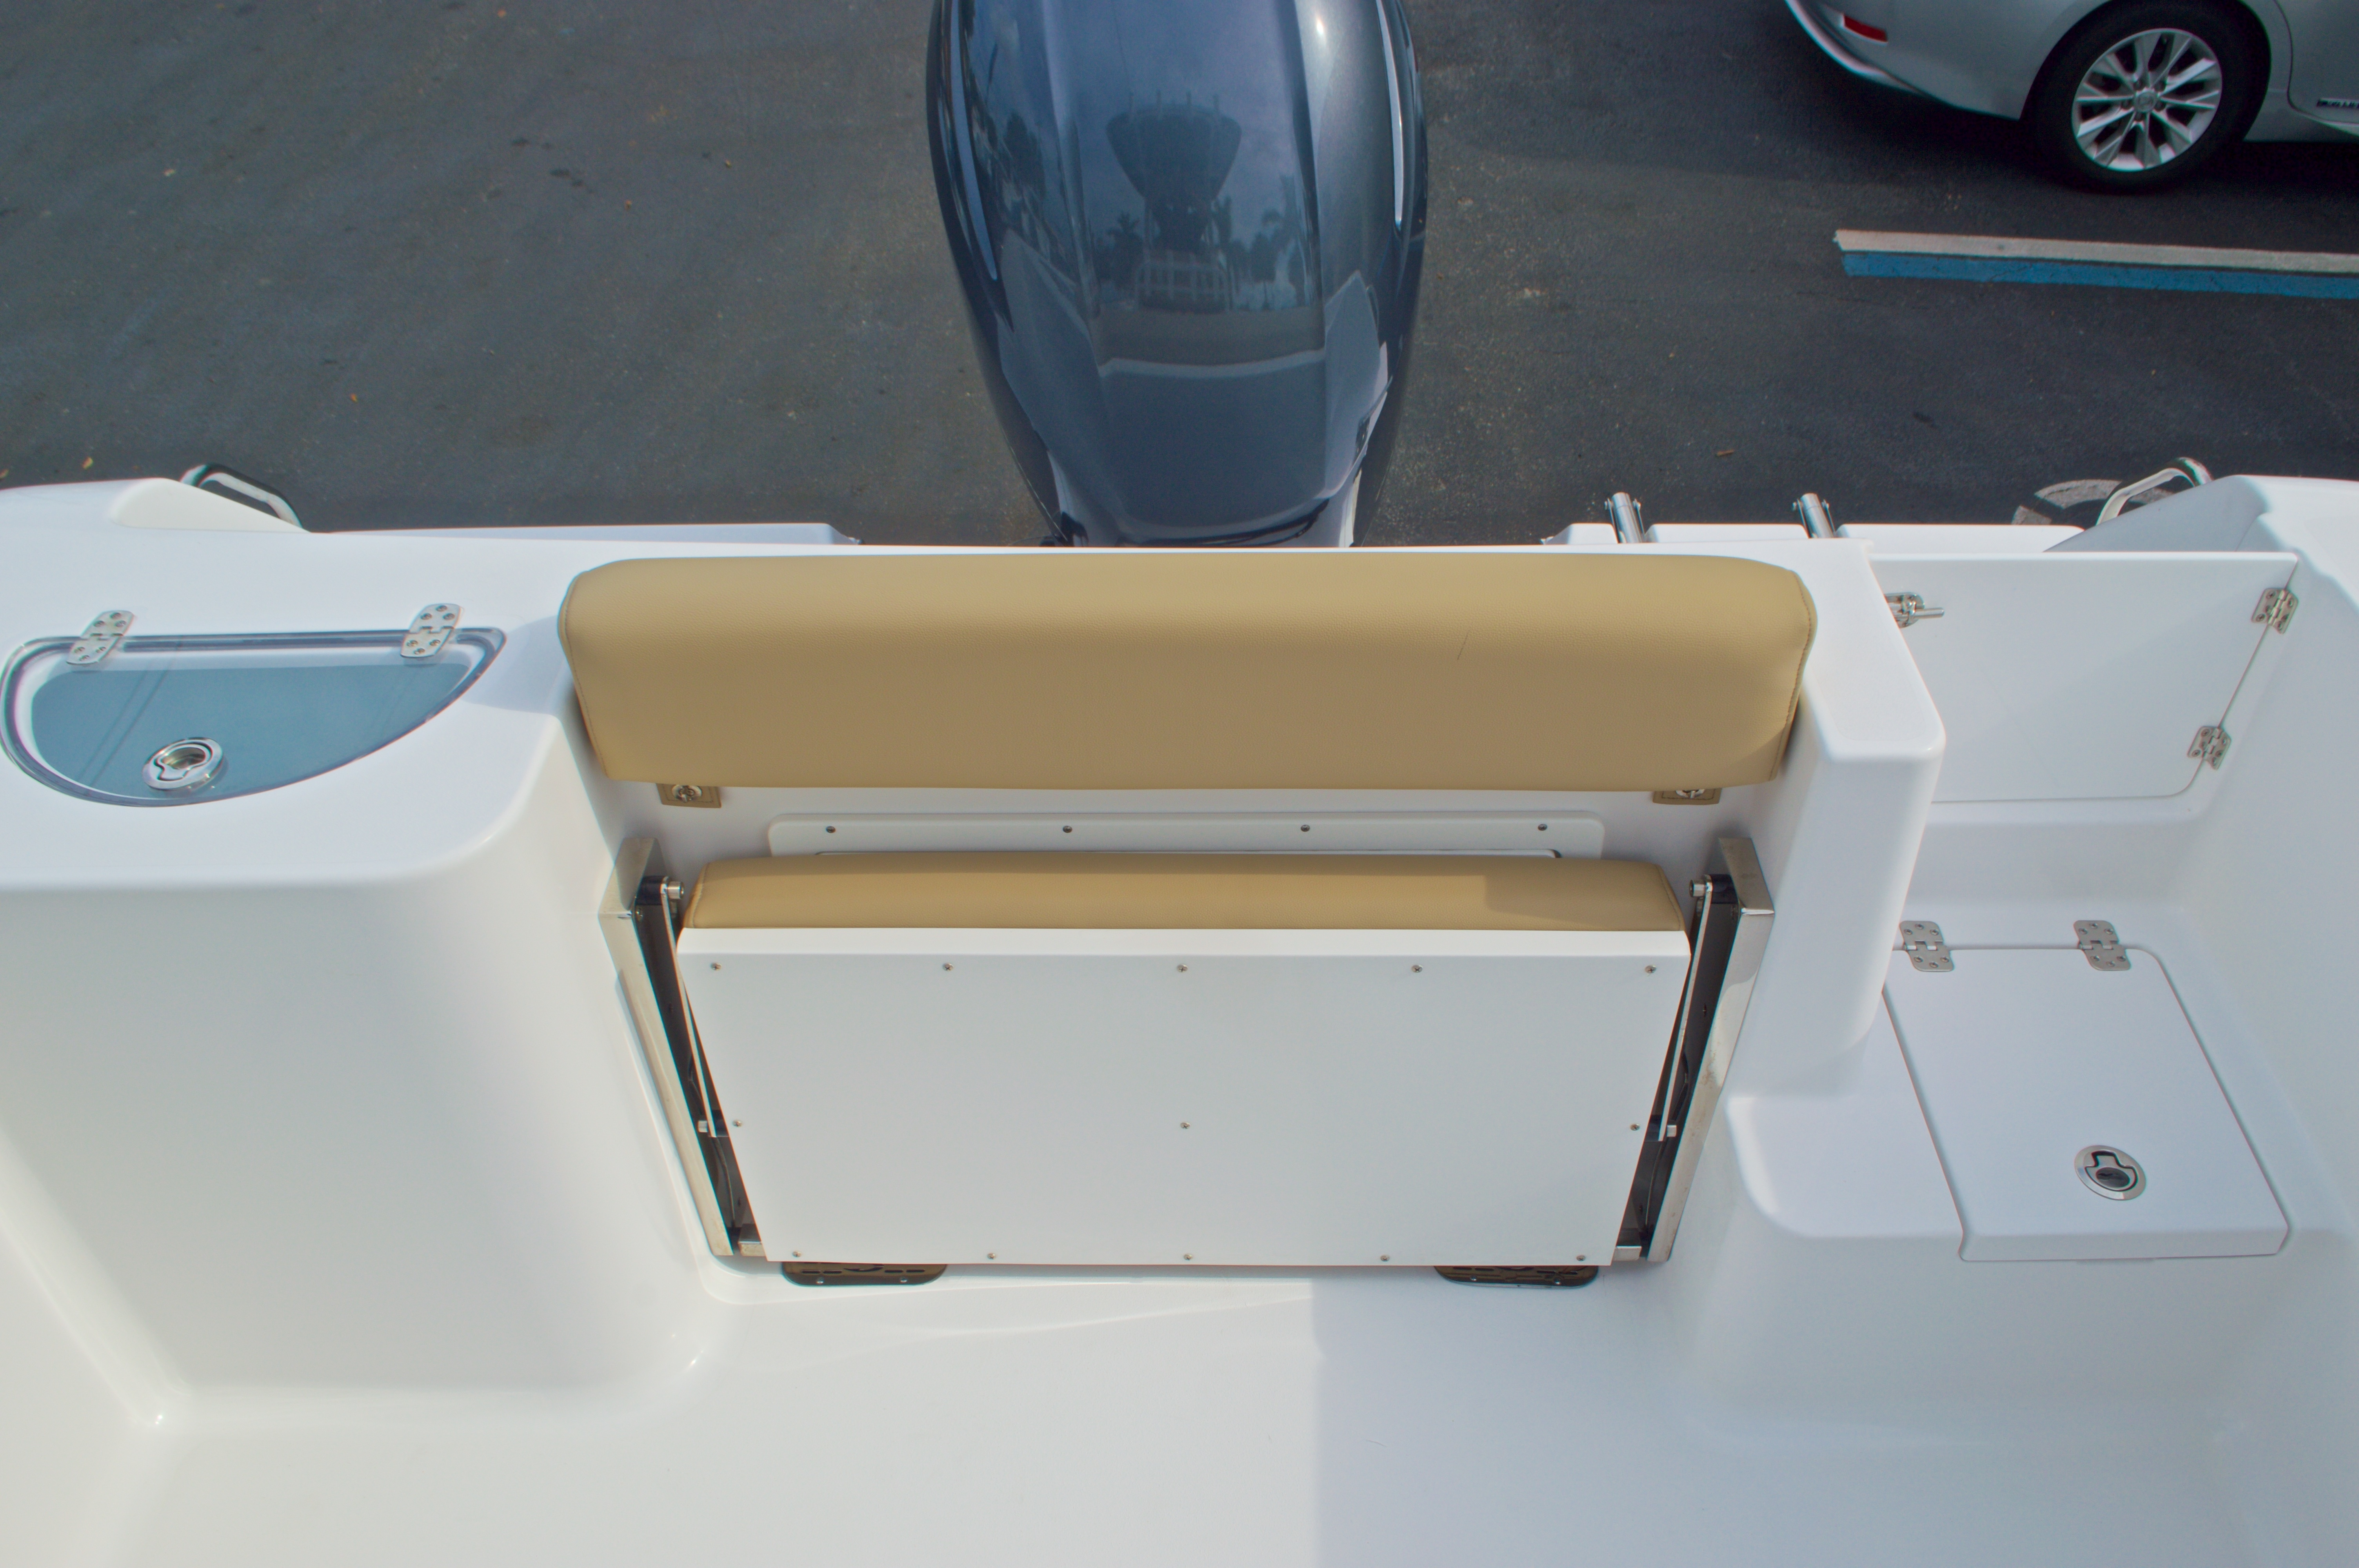 Thumbnail 13 for New 2016 Sportsman Open 232 Center Console boat for sale in Vero Beach, FL